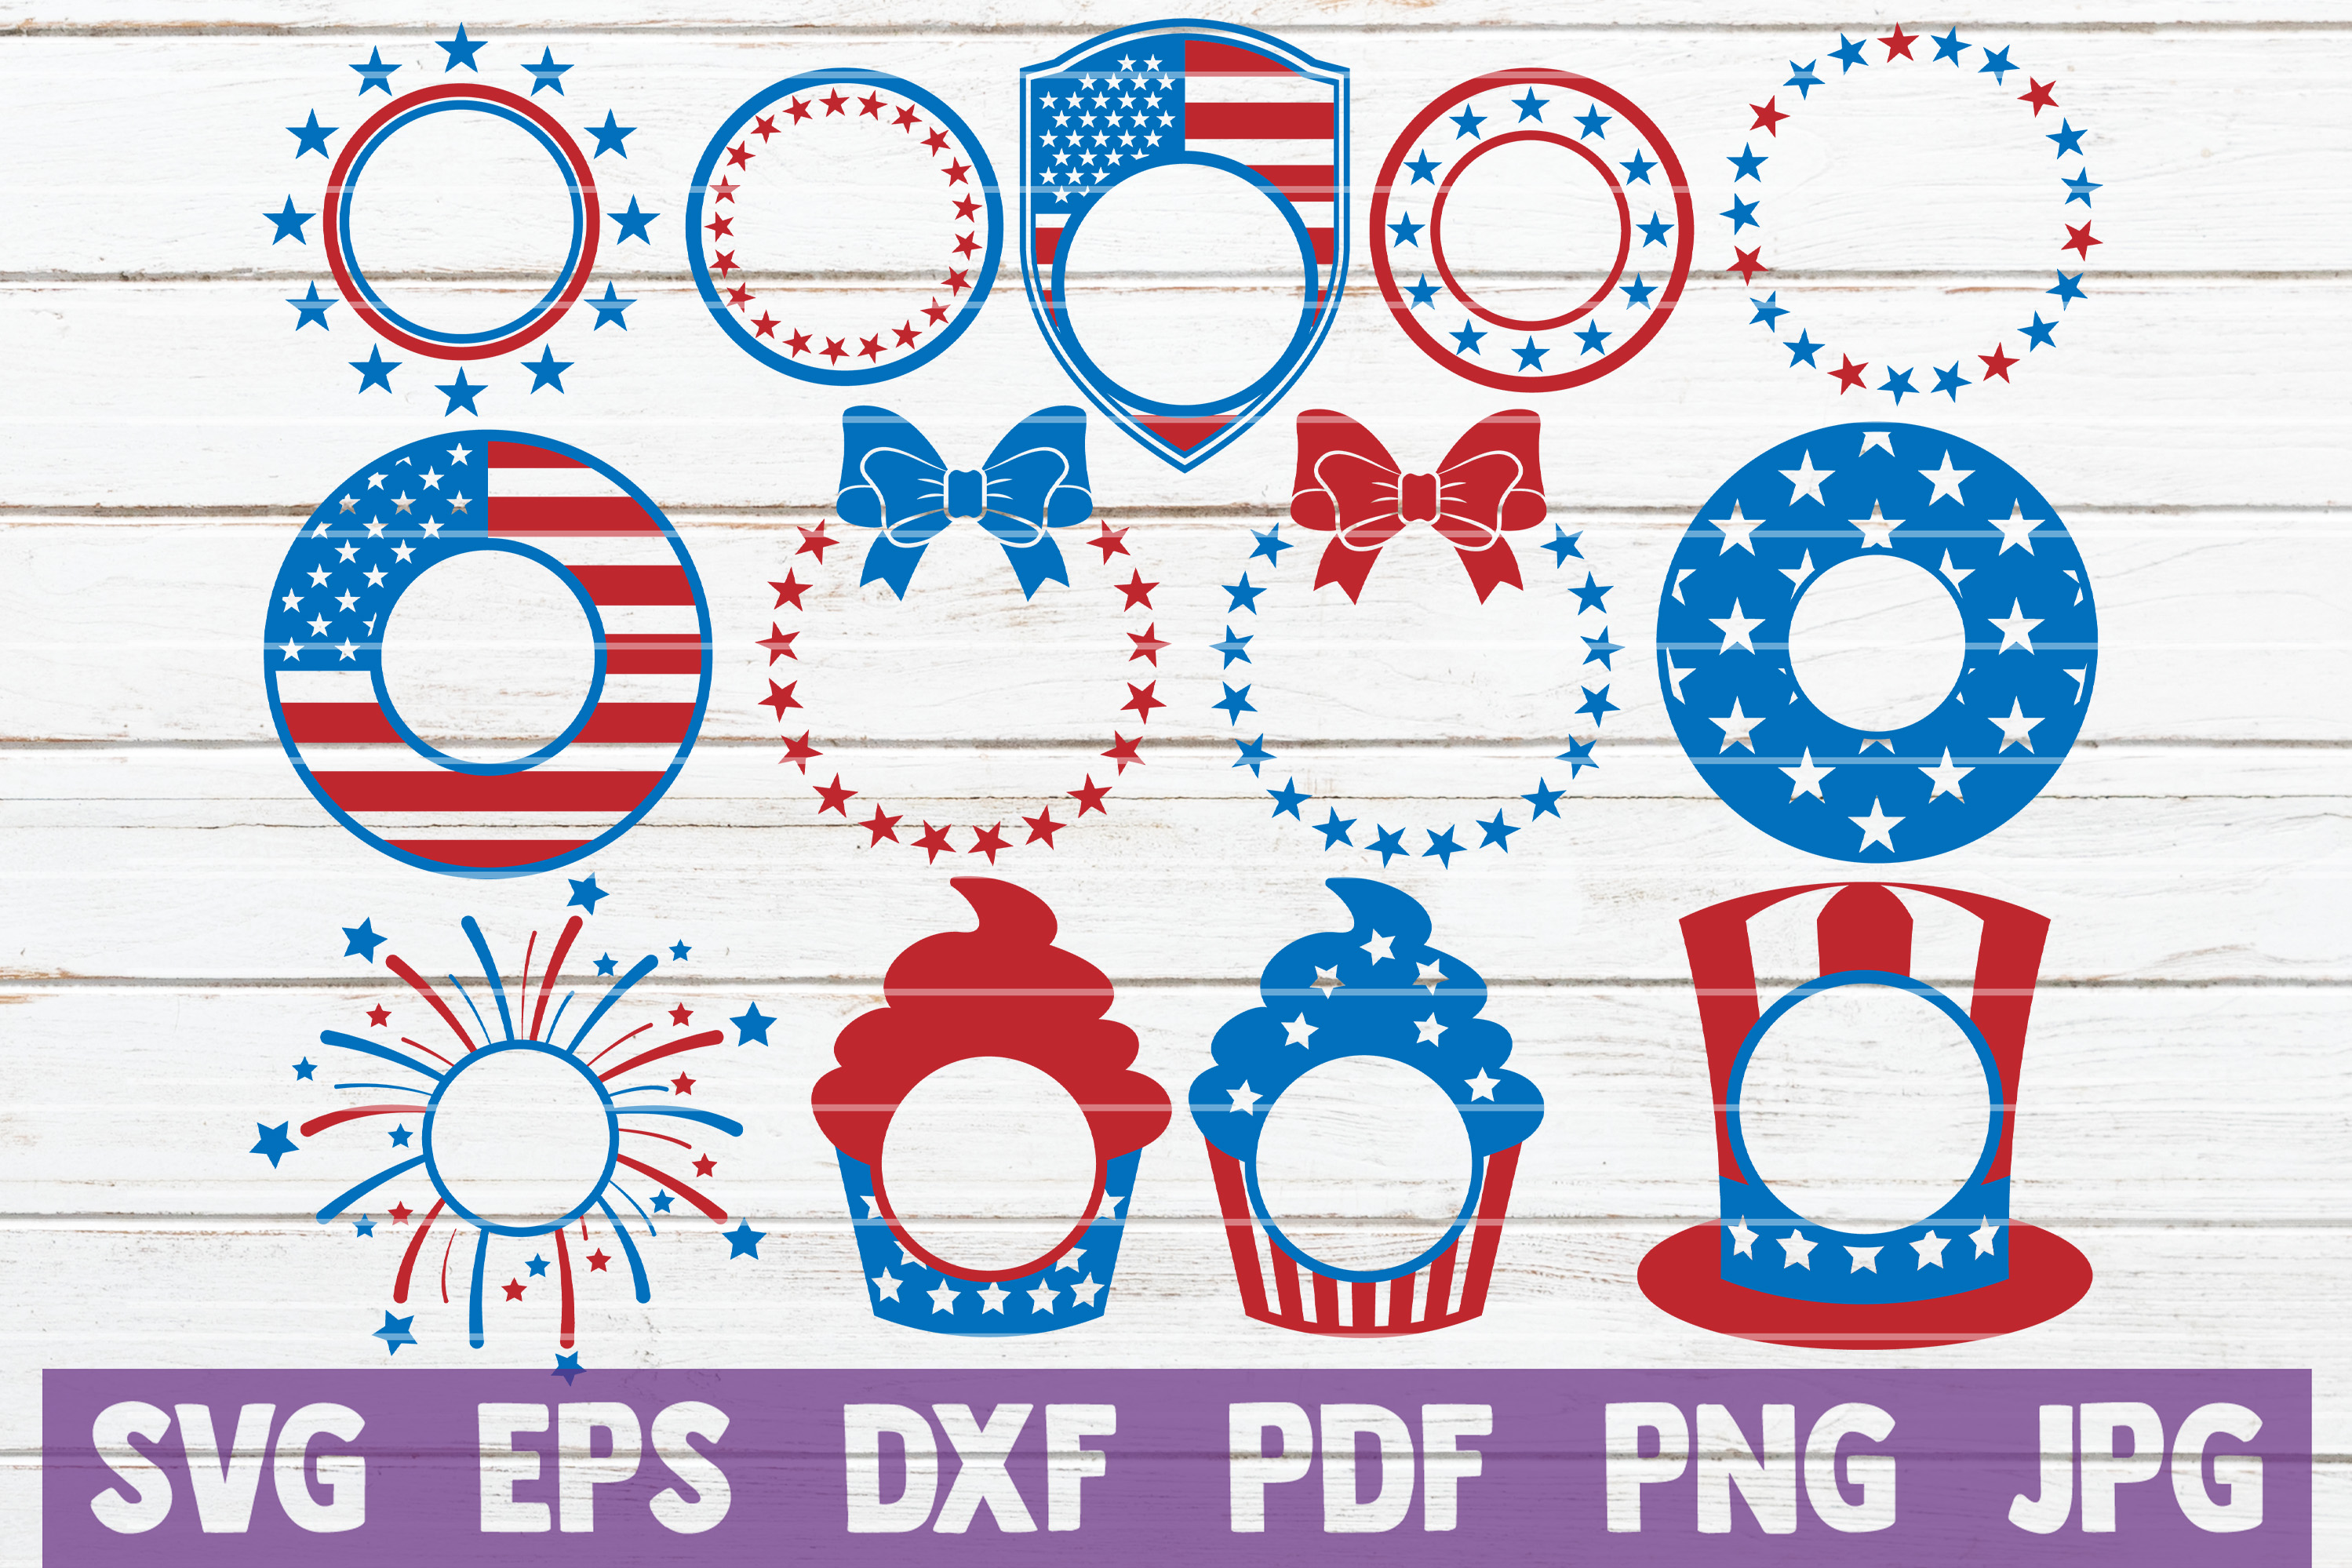 4th of July SVG Bundle | SVG Cut Files | commercial use example image 2